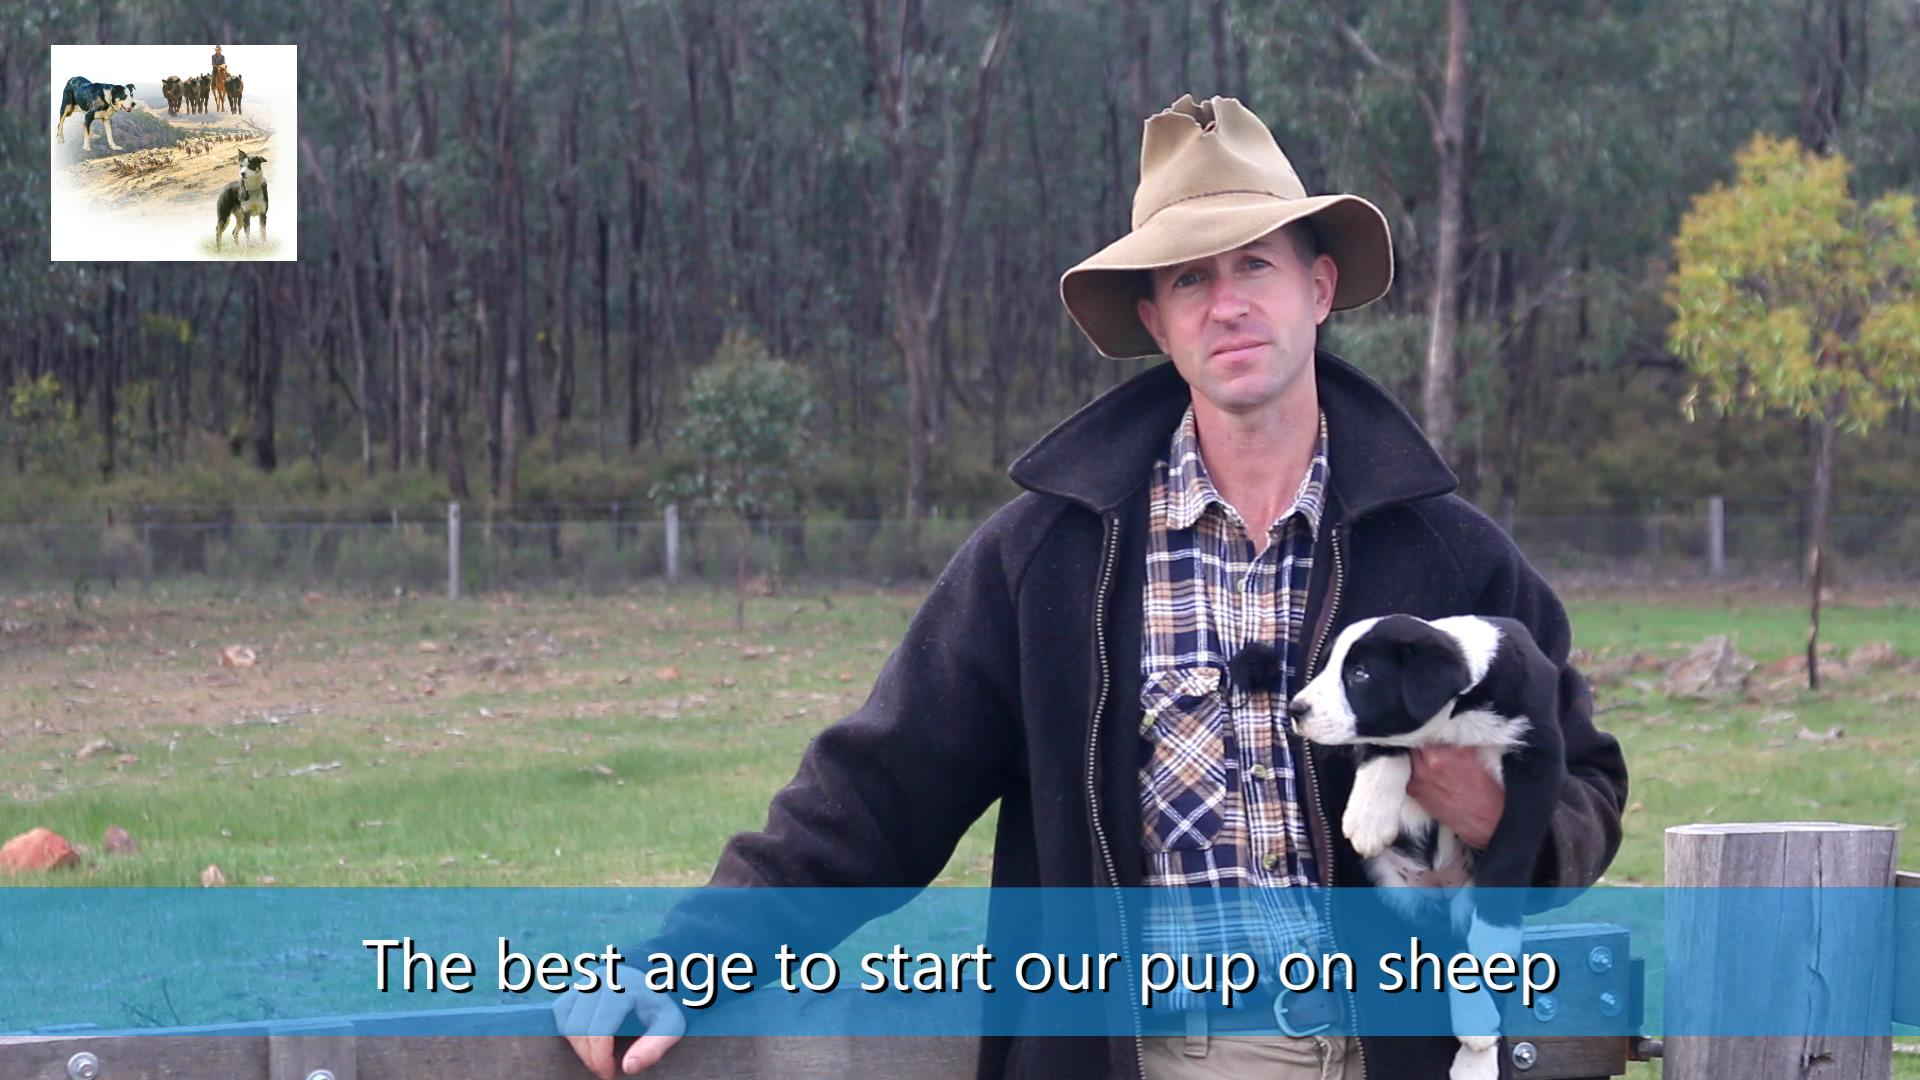 Best age to start training the sheepdog pup on sheep